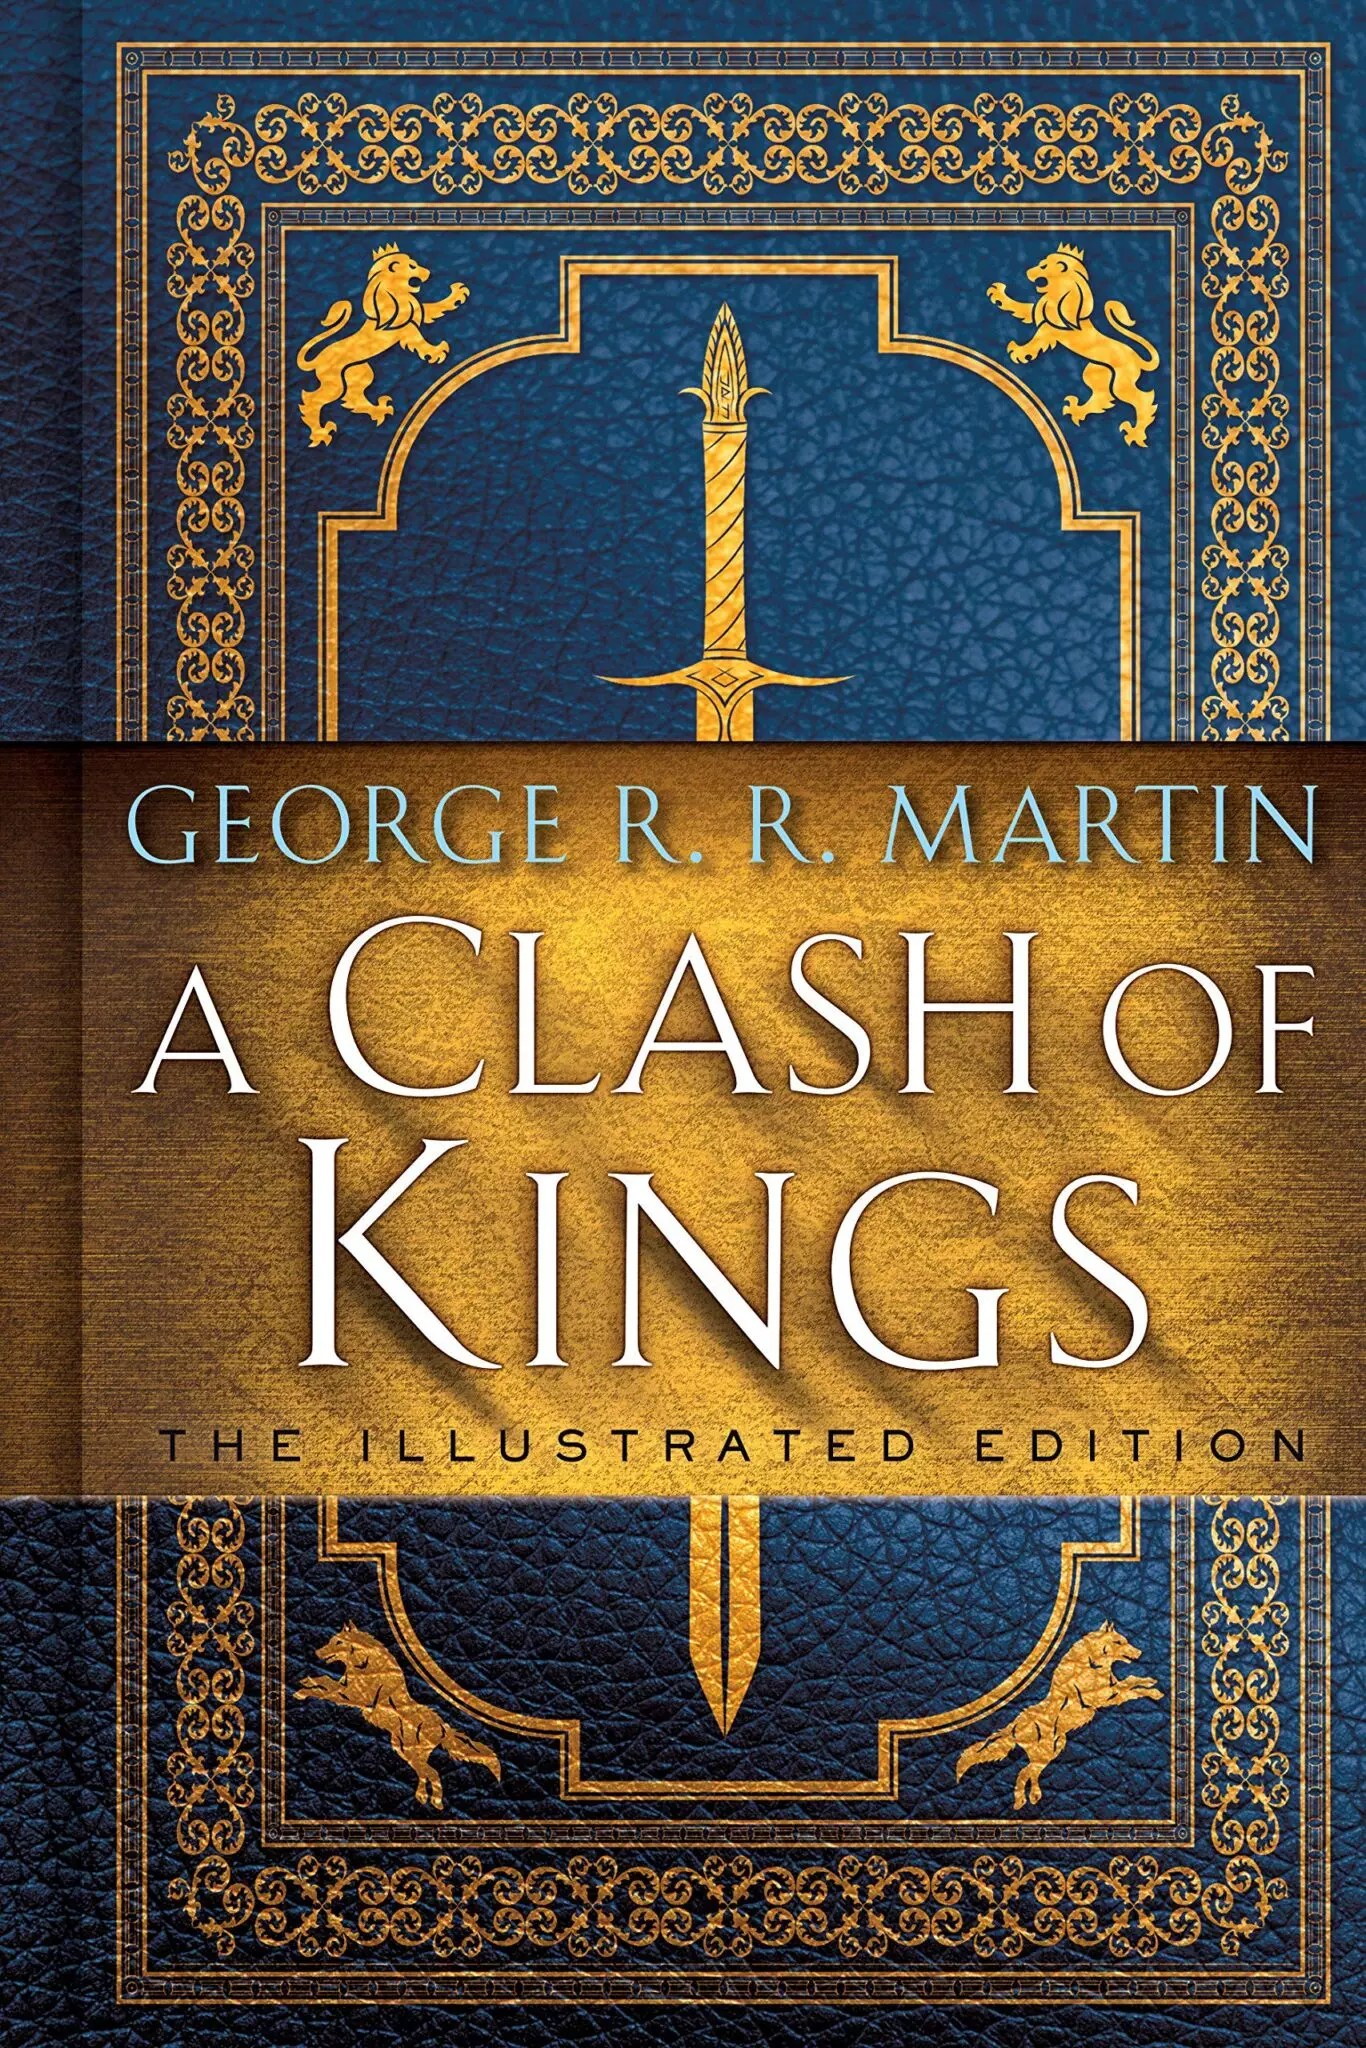 George RR Martin Clash of Kings illustrated edition